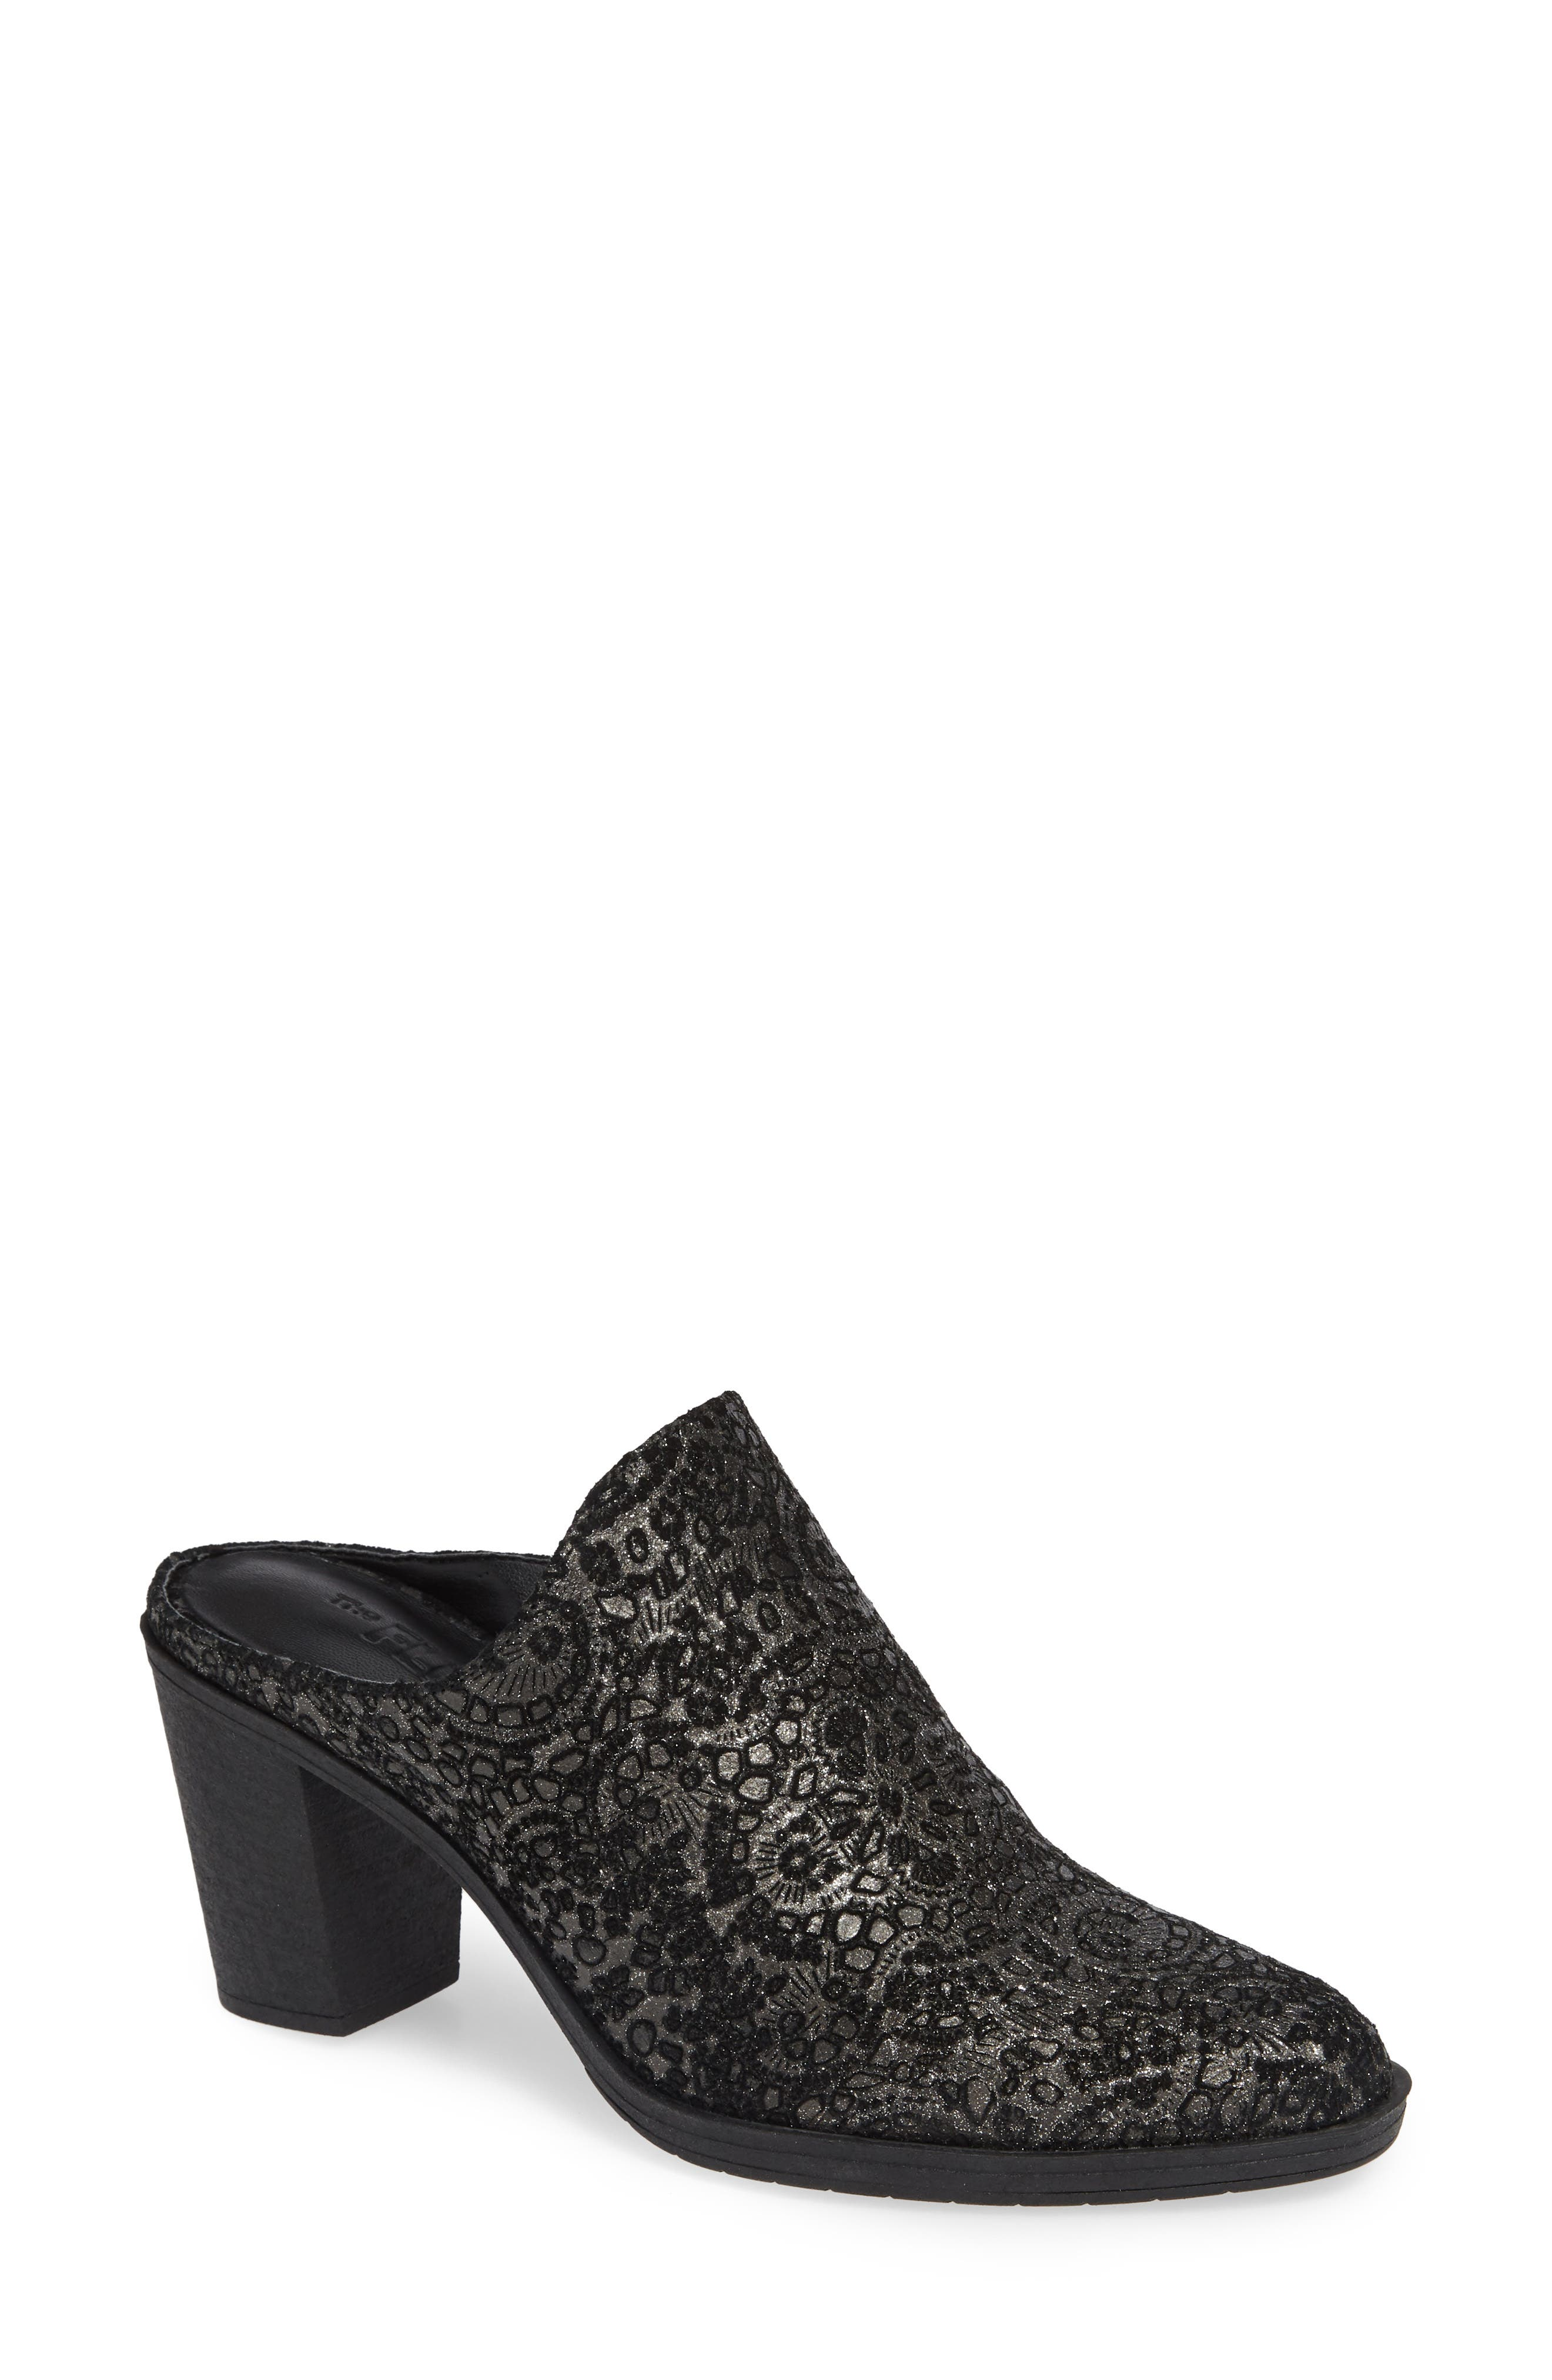 THE FLEXX Rock Me Mule, Main, color, GREY LEATHER